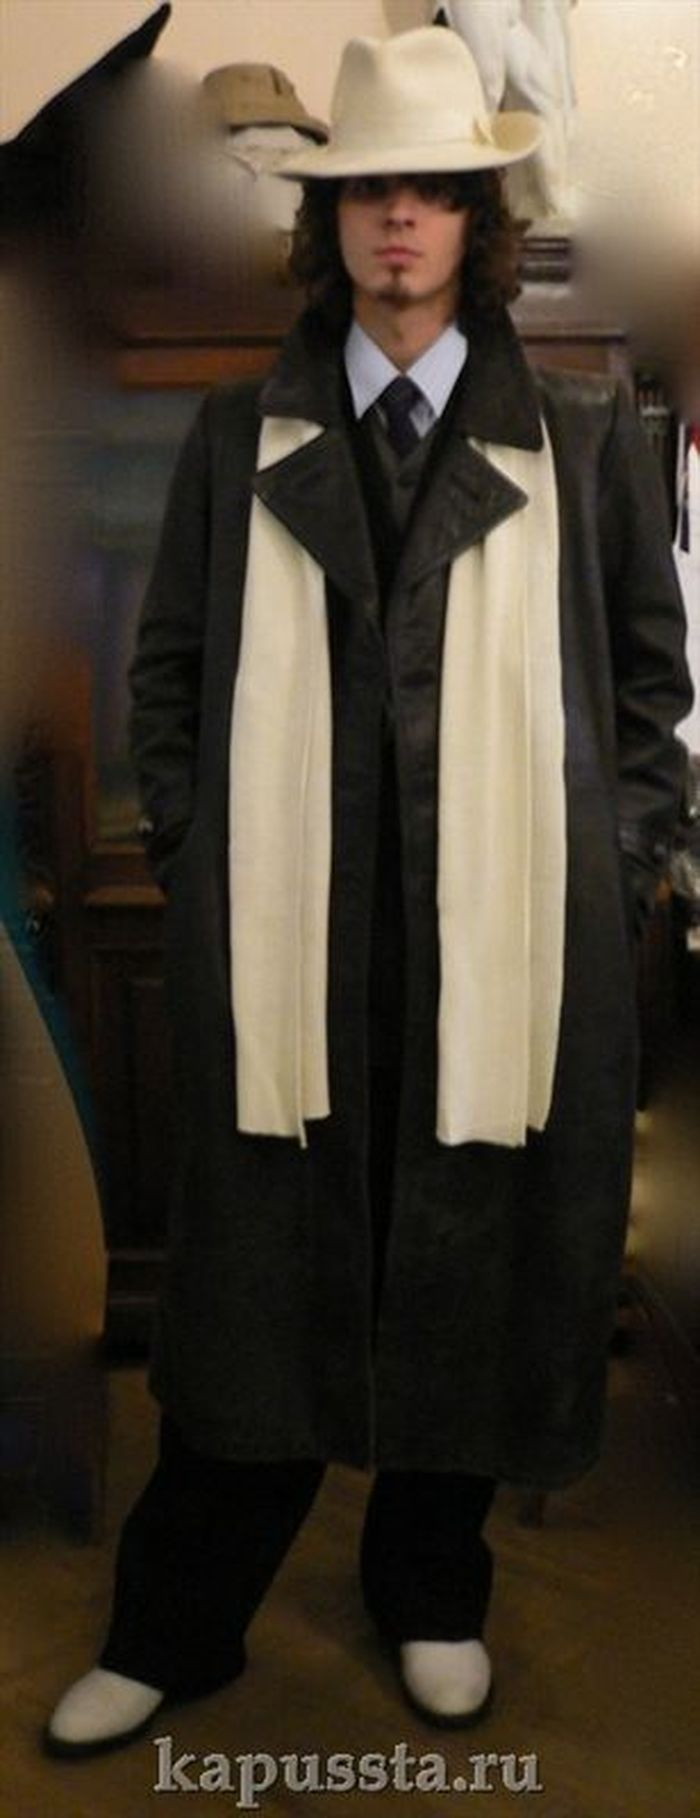 Leather coat with white gangster hat